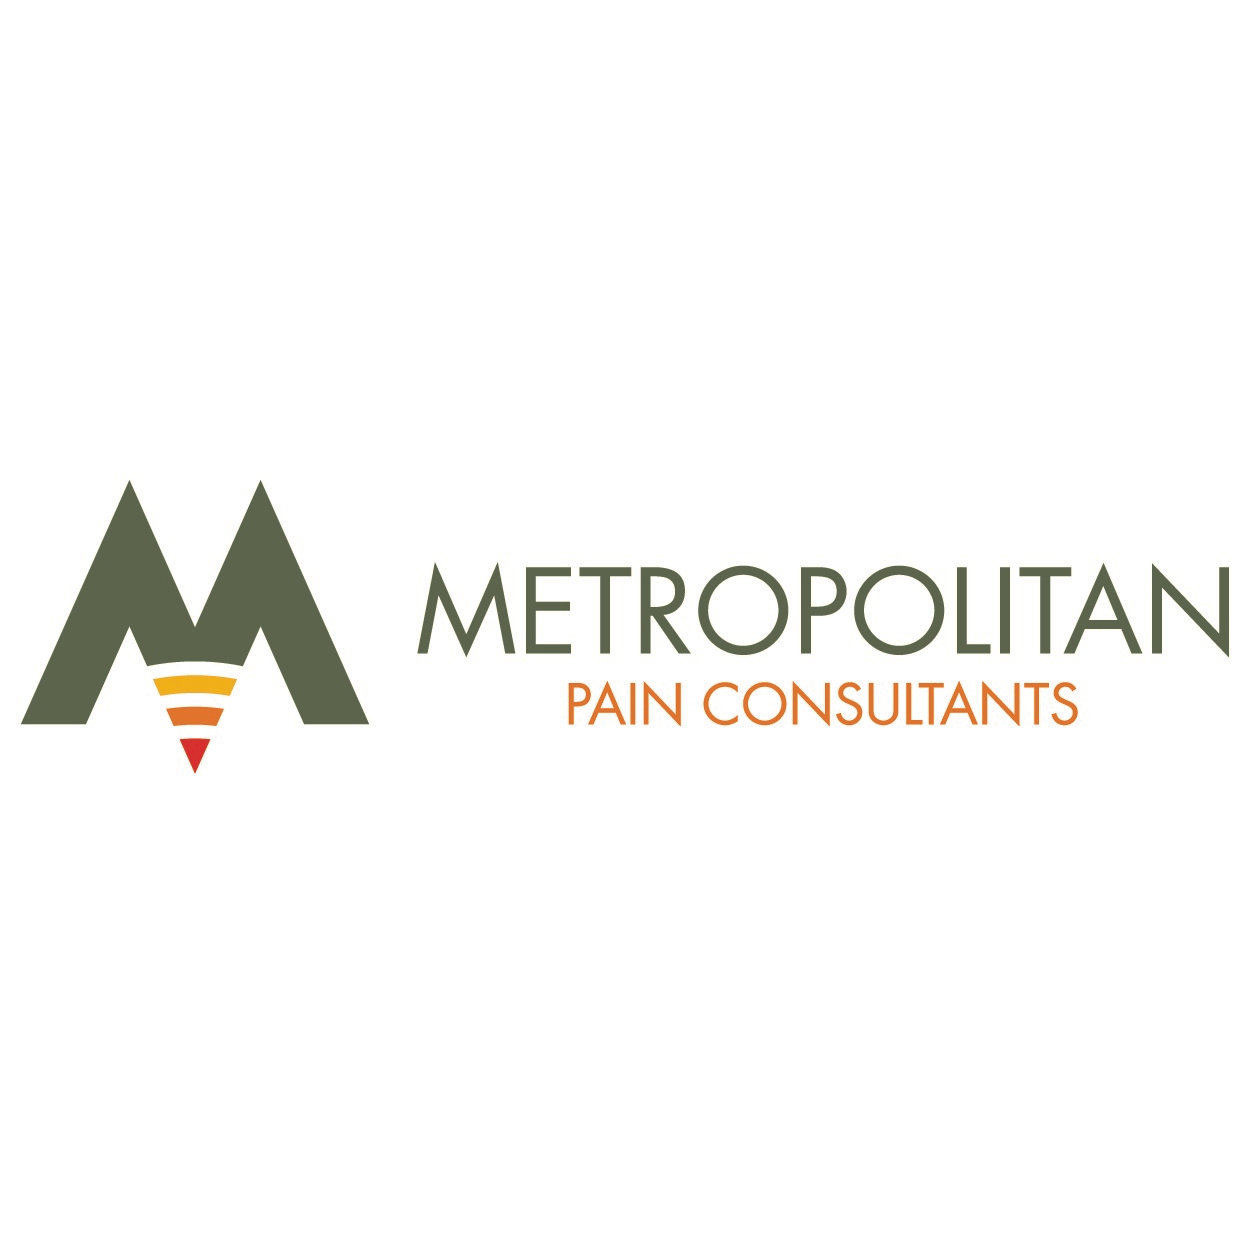 Metropolitan Pain Consultants - Interventional Spine, Sports and Orthopedic Medicine